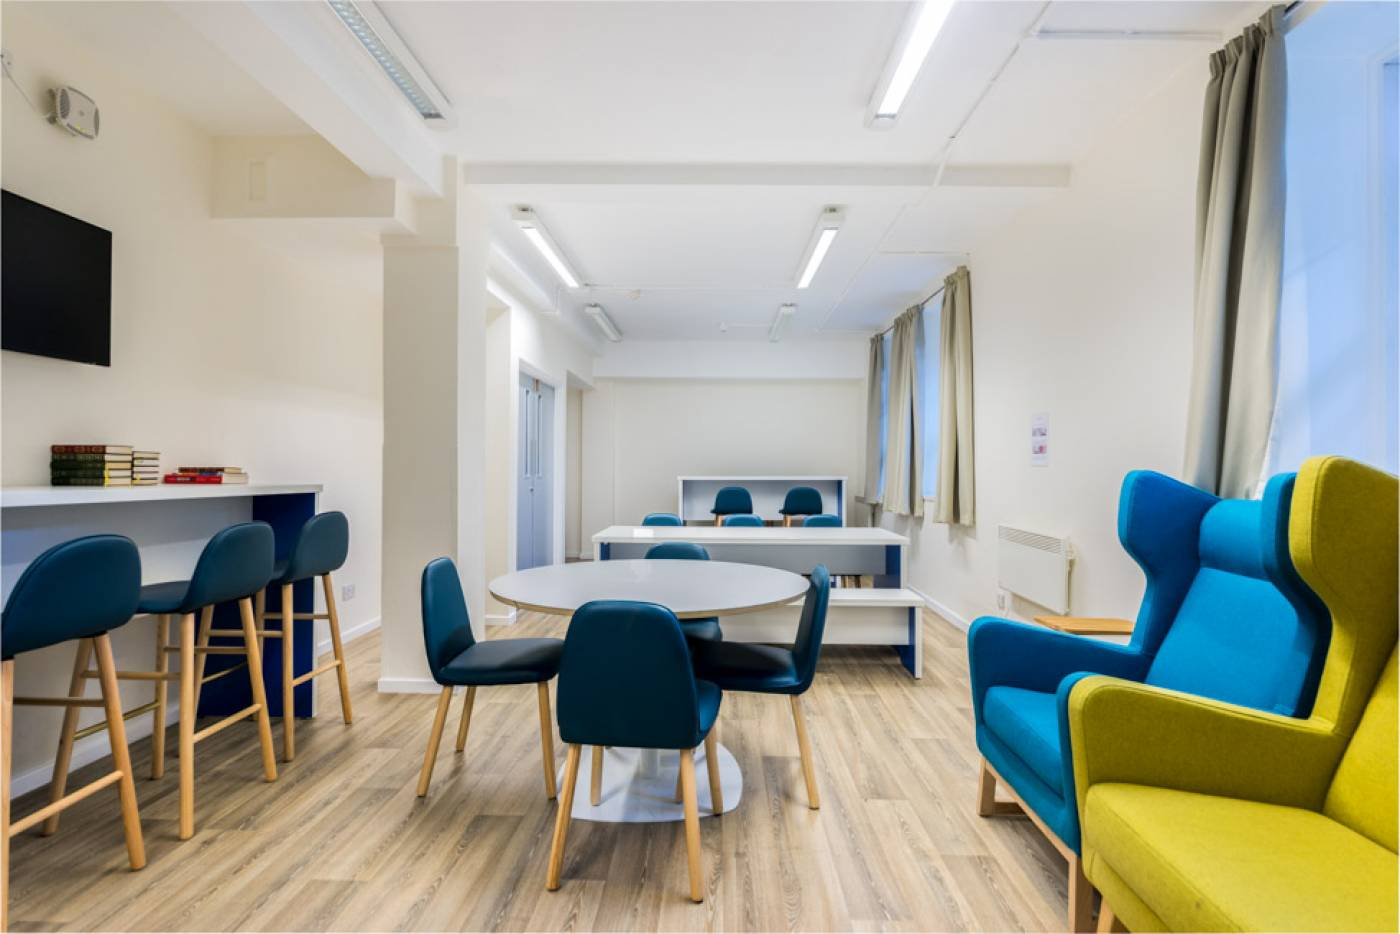 Self Catered Accommodation Ucl Student Accommodation